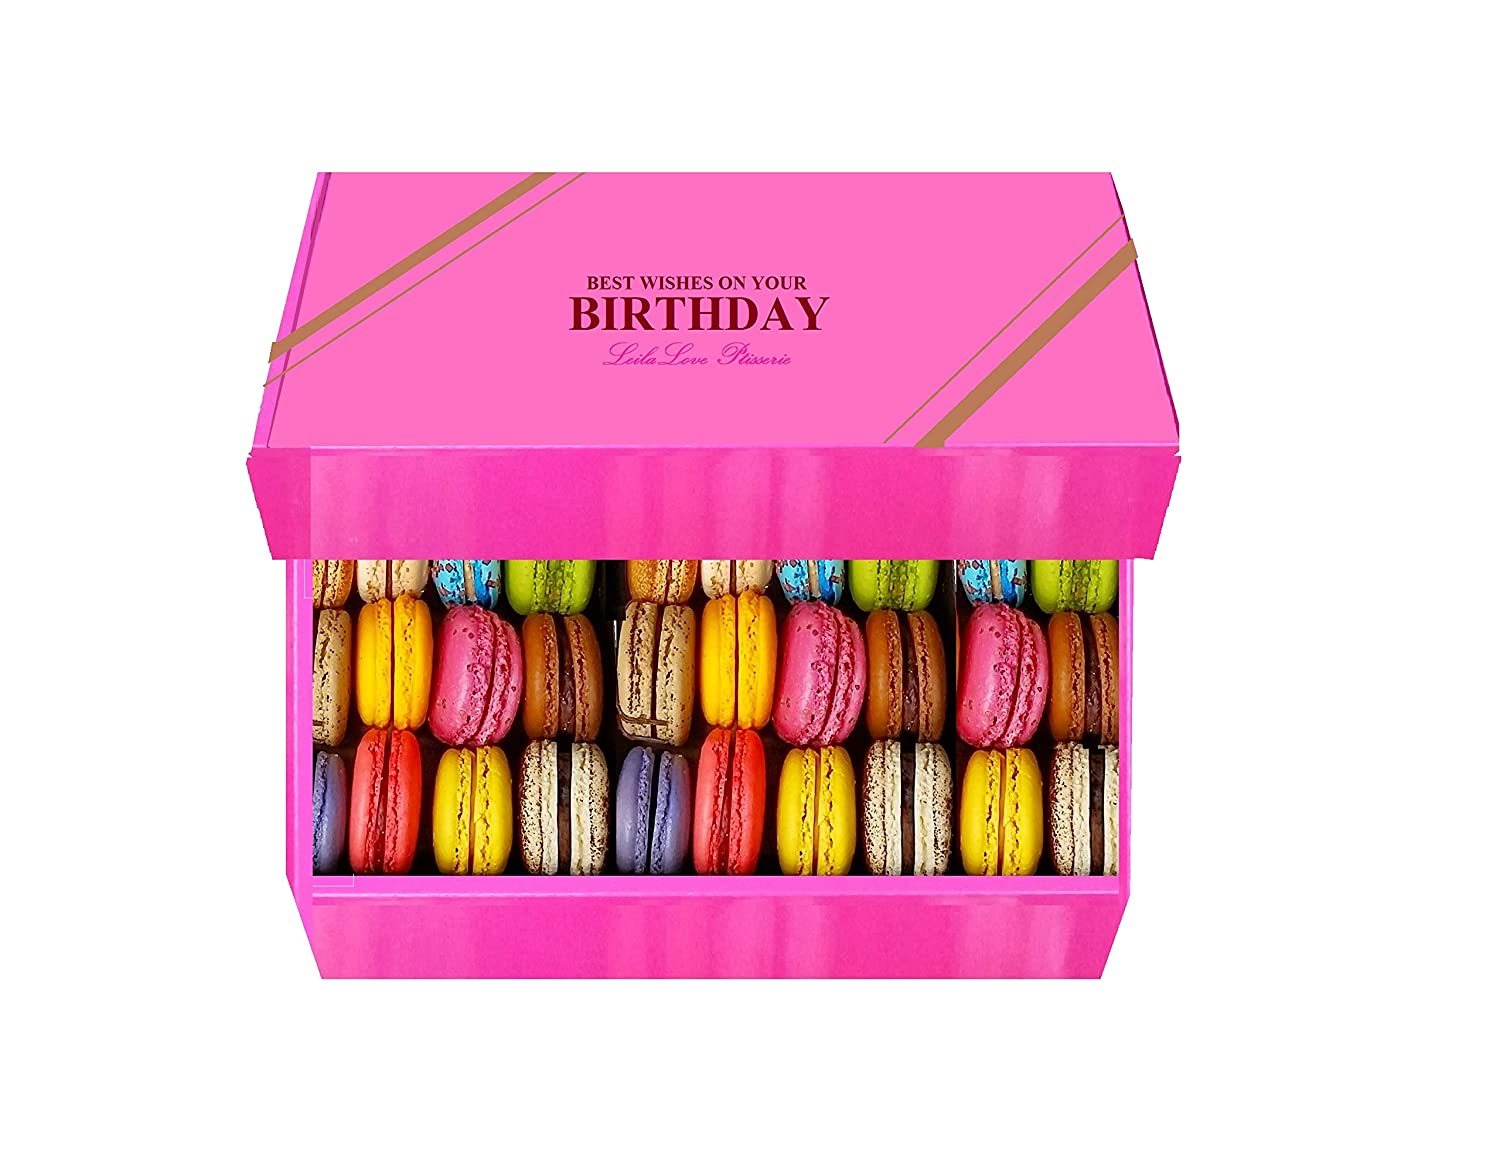 Tremendous Amazon Com Leilalove Macarons 20 Special Birthday Cake Macarons Personalised Birthday Cards Paralily Jamesorg